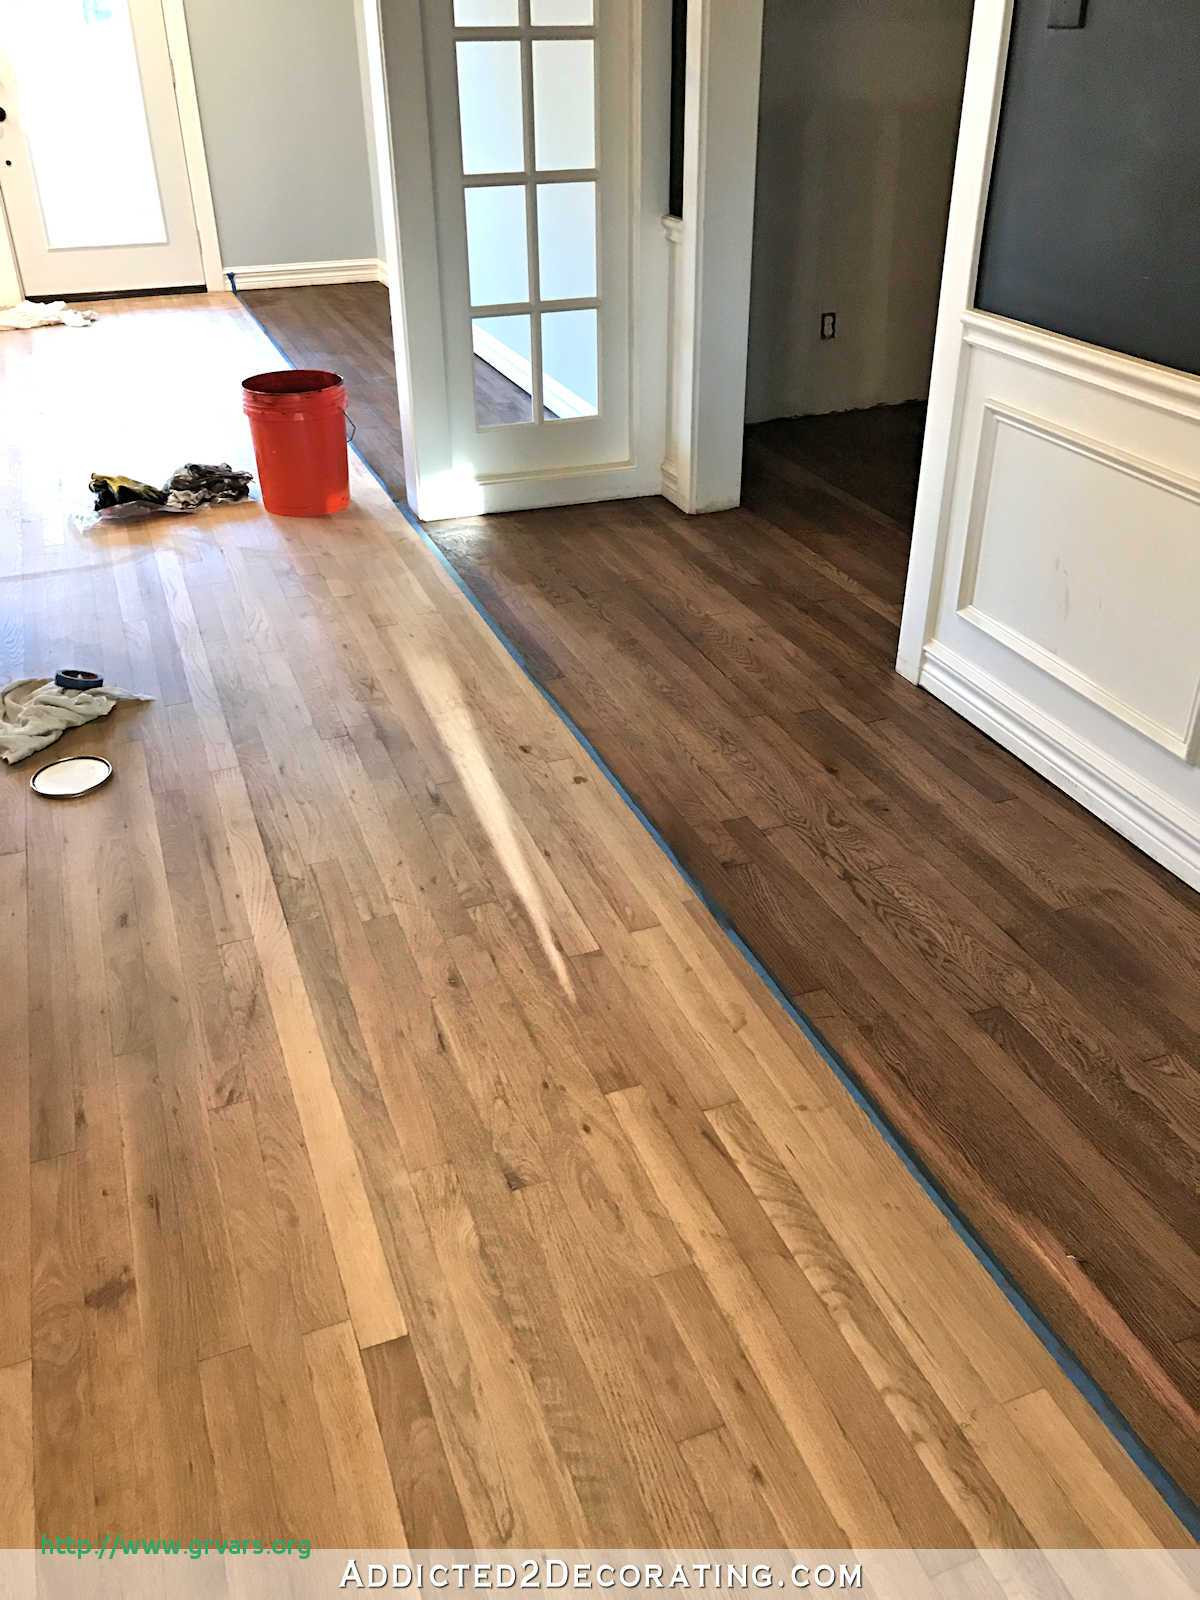 cost per square foot to refinish hardwood floors of cost to restain hardwood floors frais cost hardwood floors per regarding refinishing hardwood floors podemosleganes cost to restain hardwood floors meilleur de adventures in staining my red oak hardwood floors products